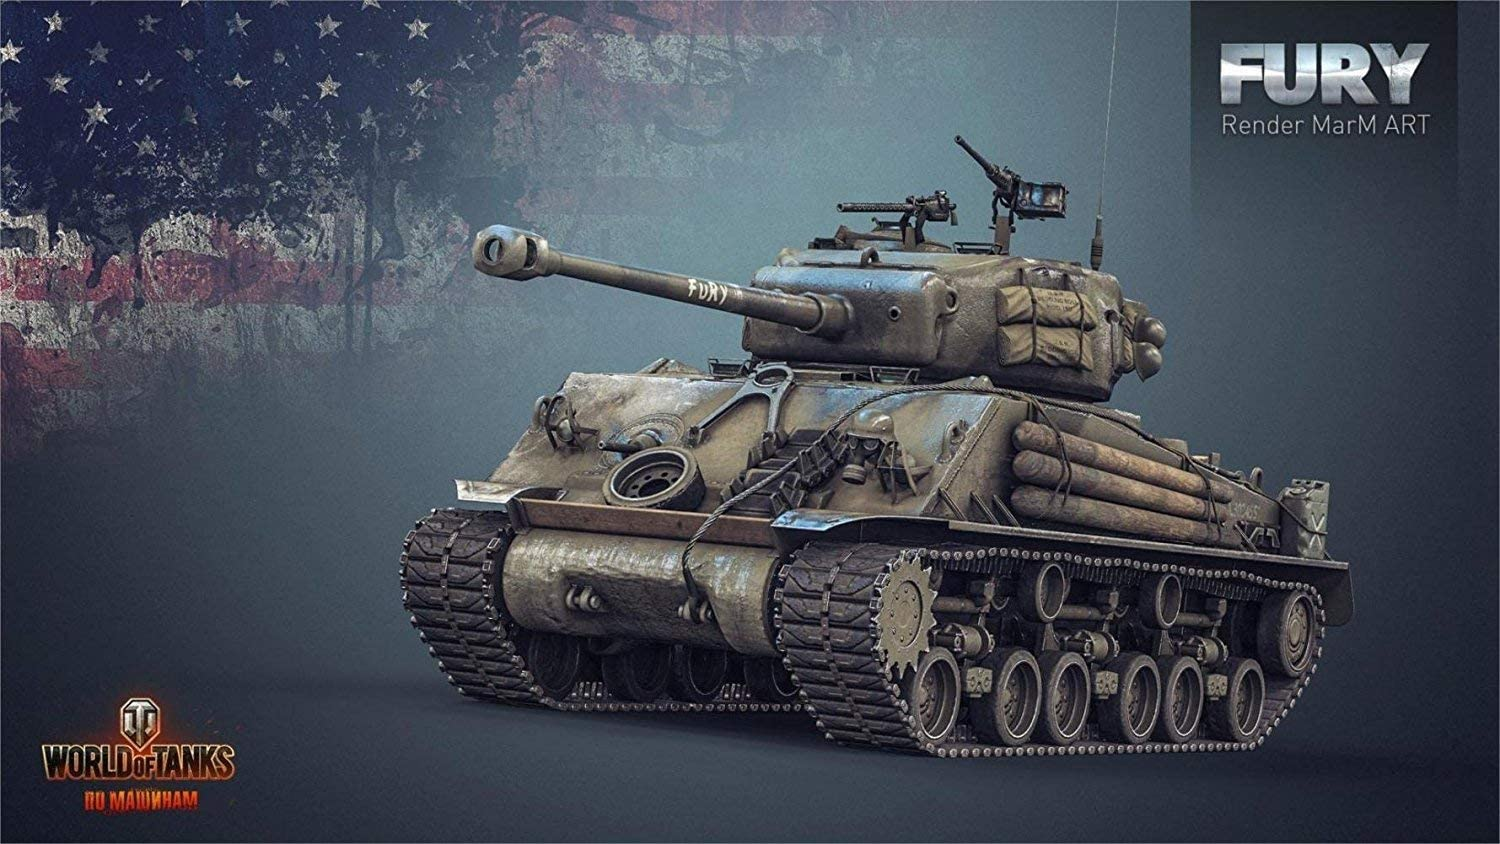 Yutirerly World of Tanks Tanks Wargaming 3D Renders Video Games M4 ...